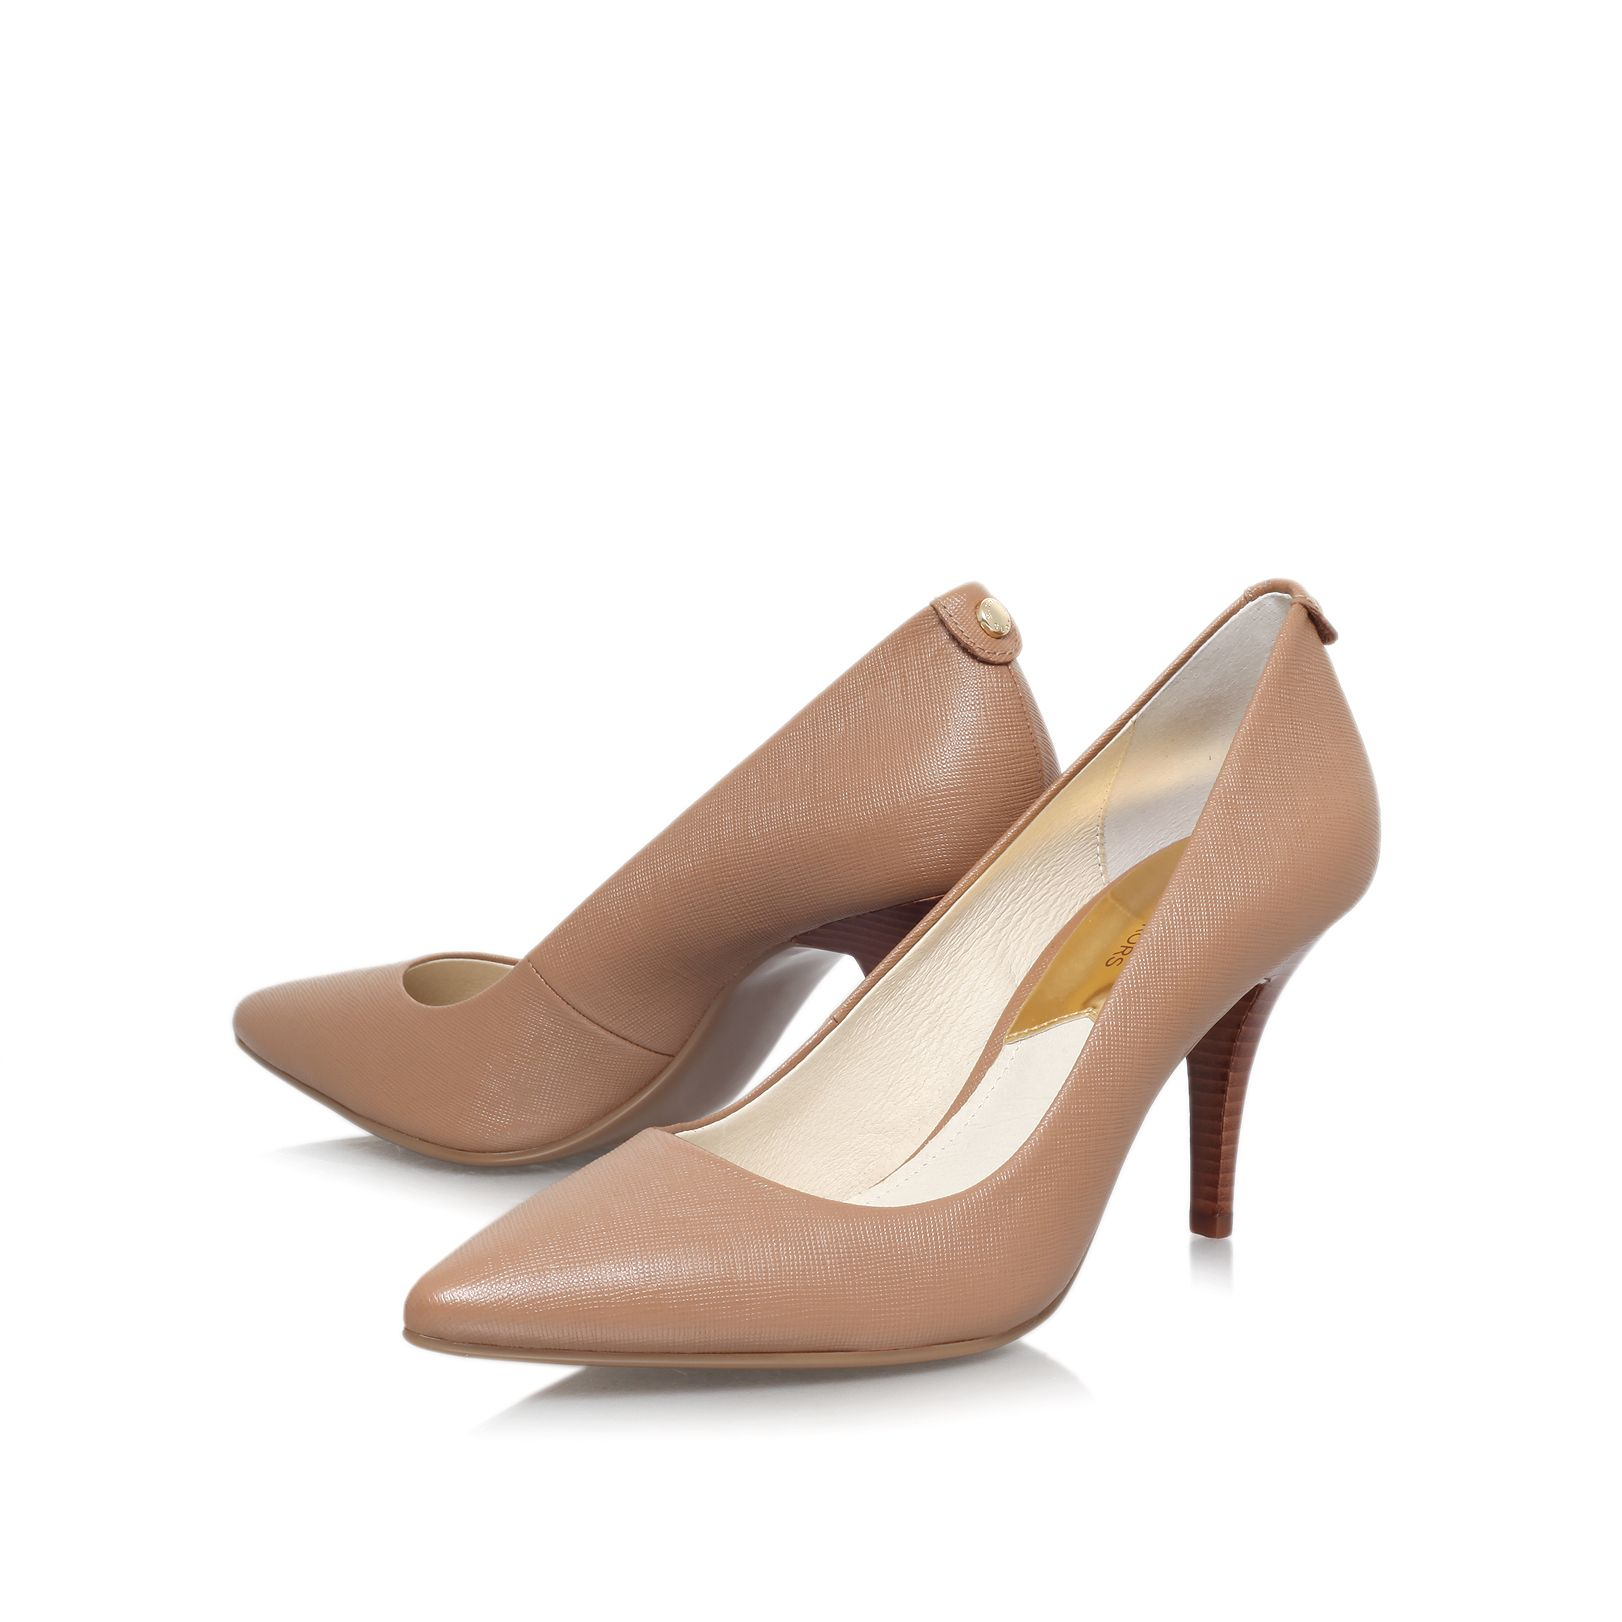 Taupe Kitten Heel Shoes | Tsaa Heel